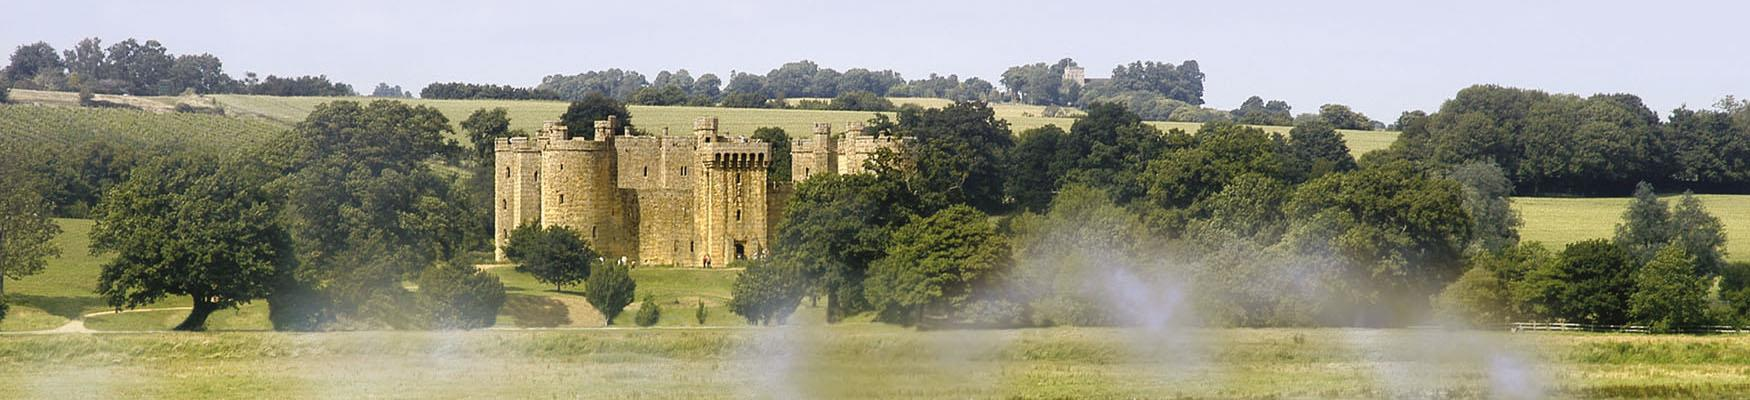 Bodiam Castle with steam train in foreground